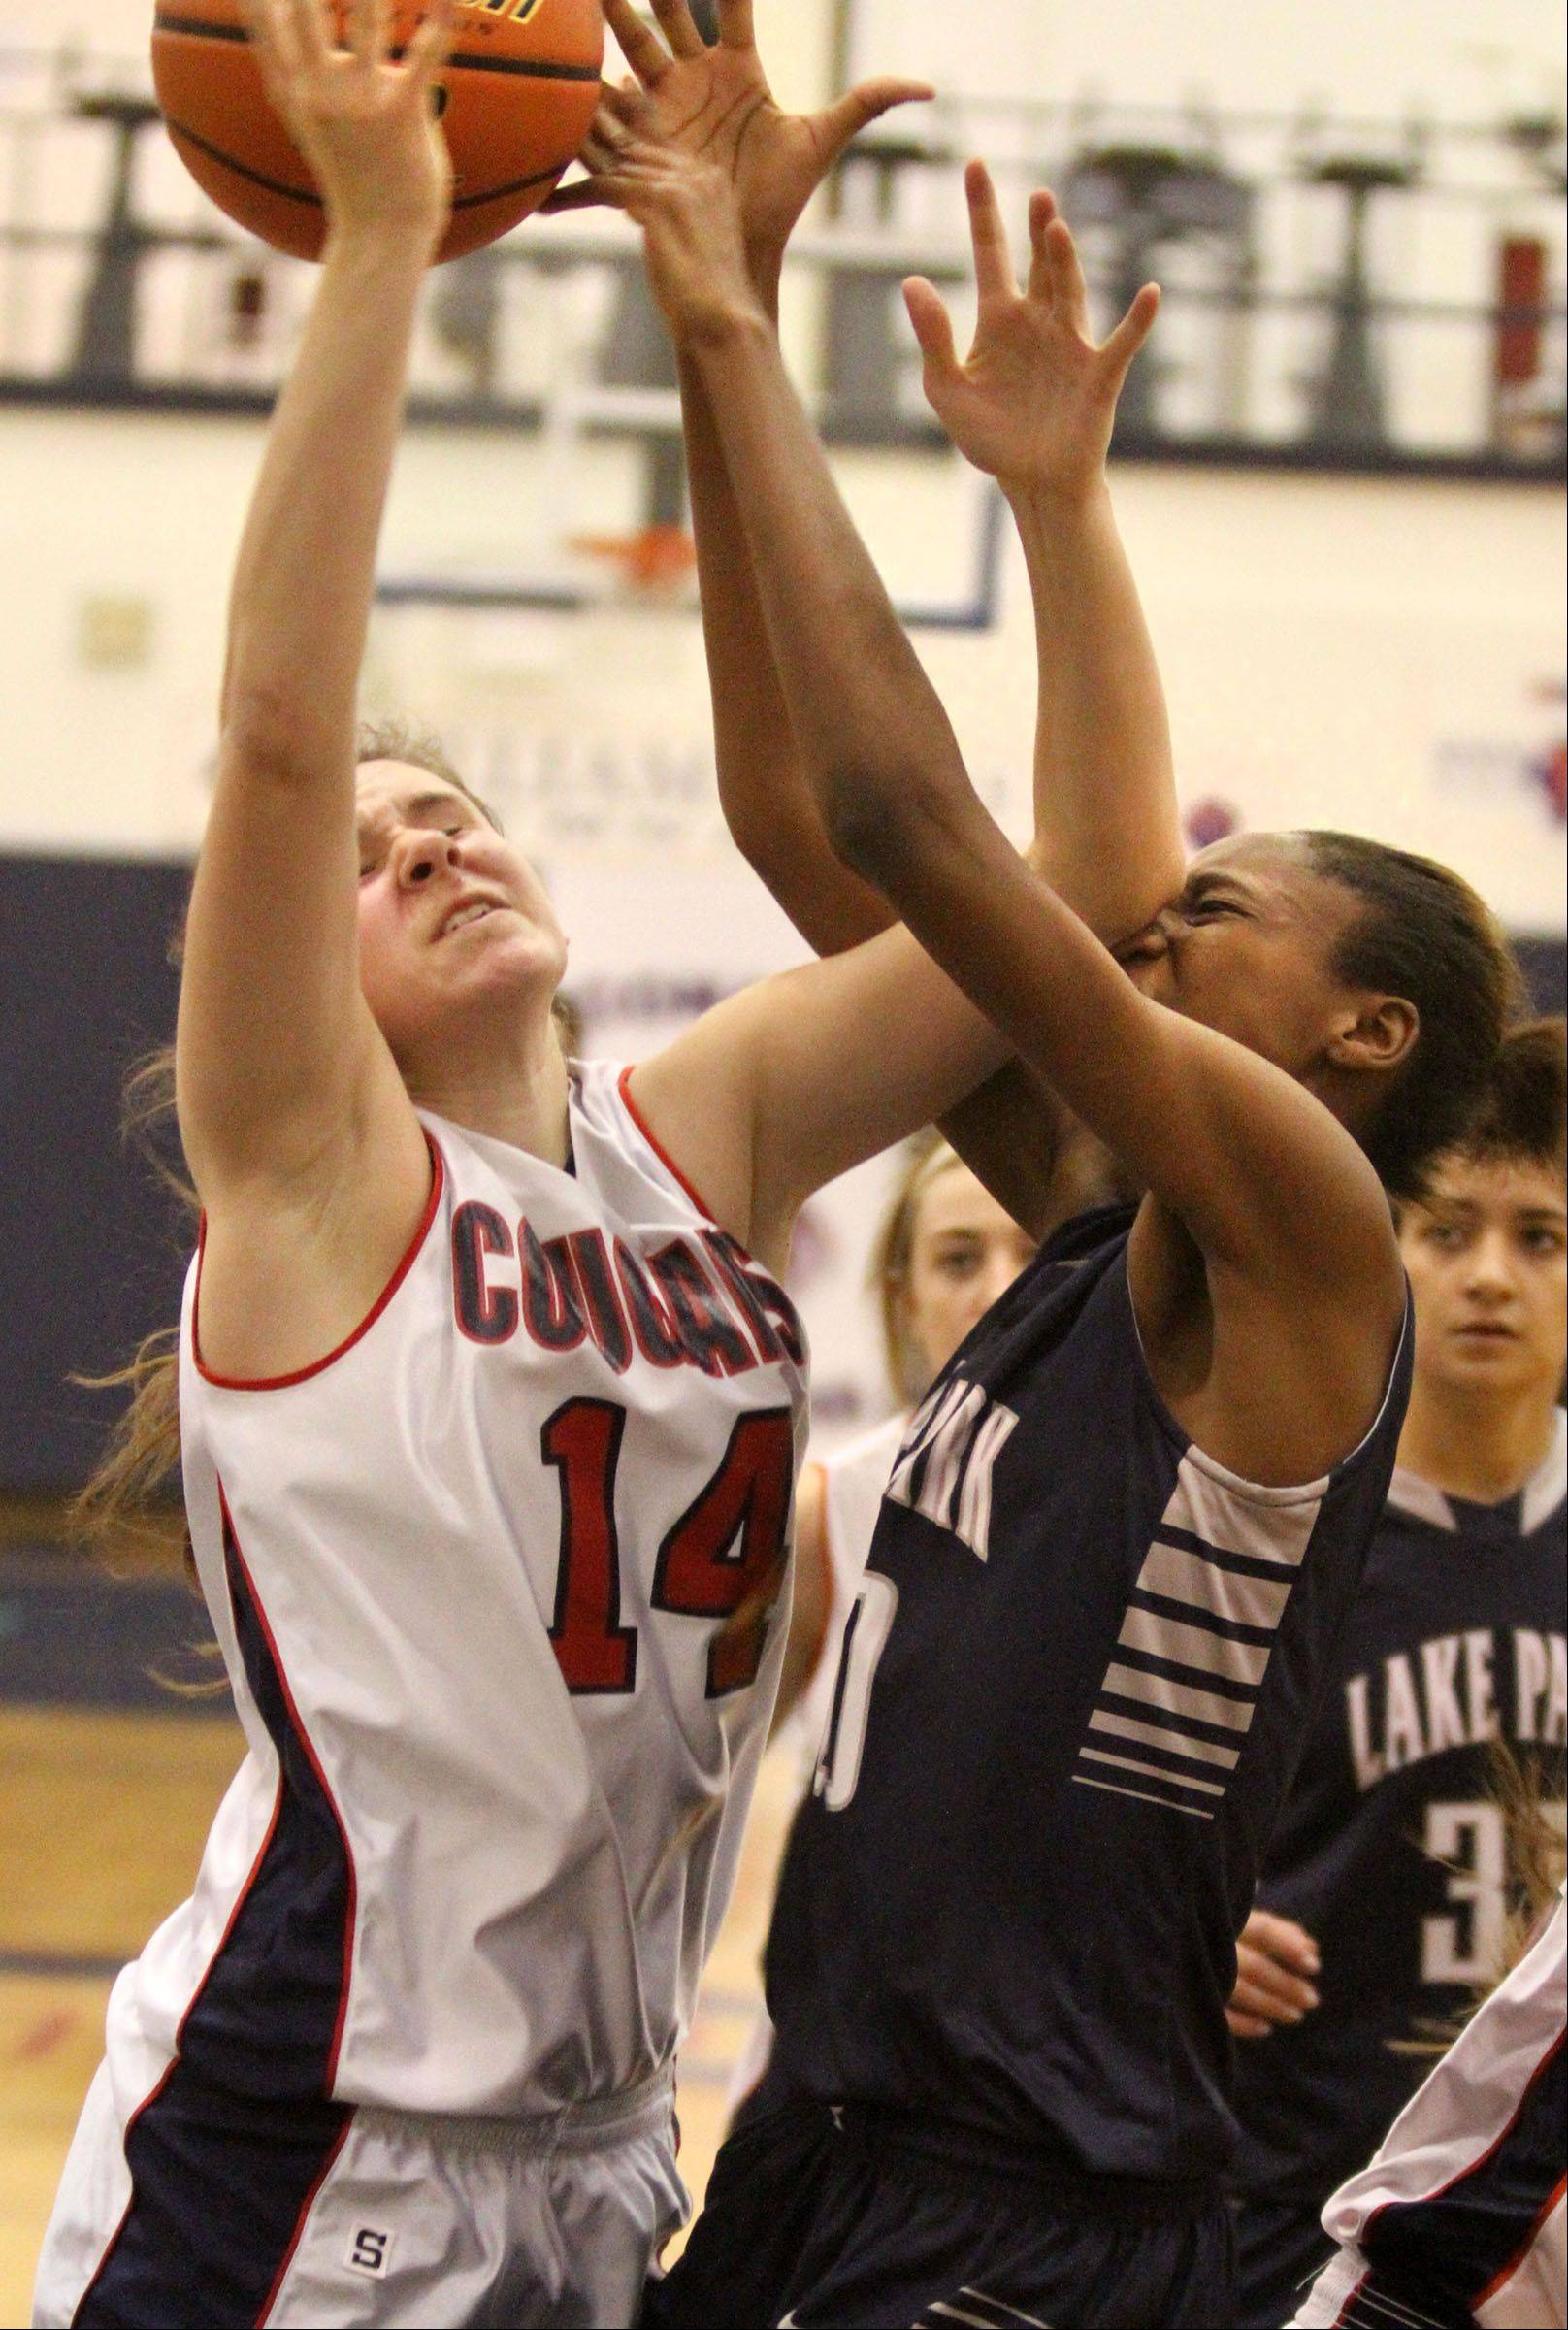 Conant's Sarah Mazurek, left, and Lake Park's Tyshai Freeman collide while leaping for a rebound Saturday at Conant.